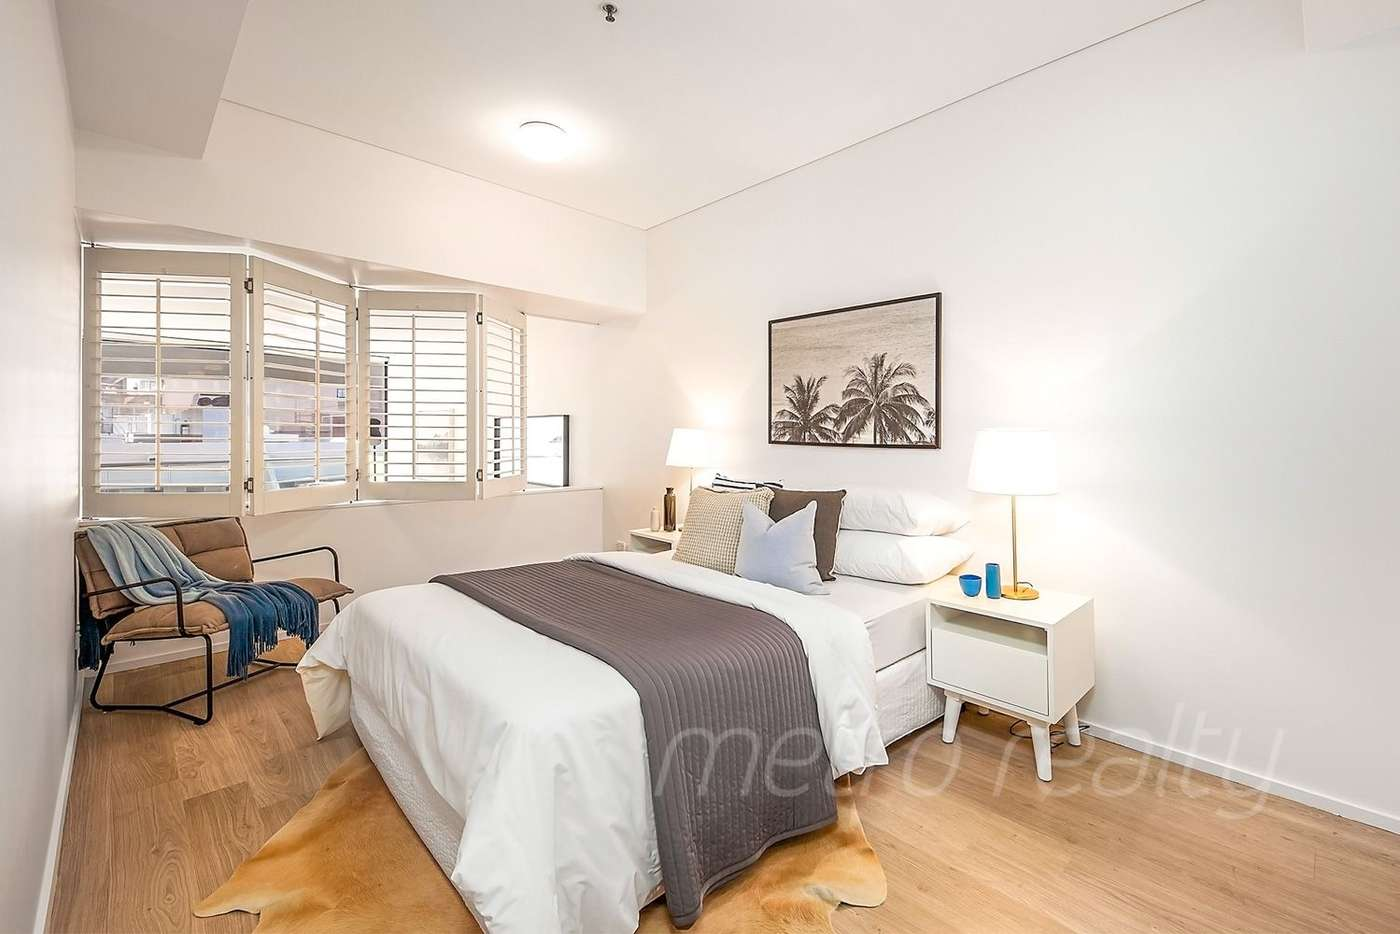 Fifth view of Homely apartment listing, 26/91 Goulburn St, Sydney NSW 2000